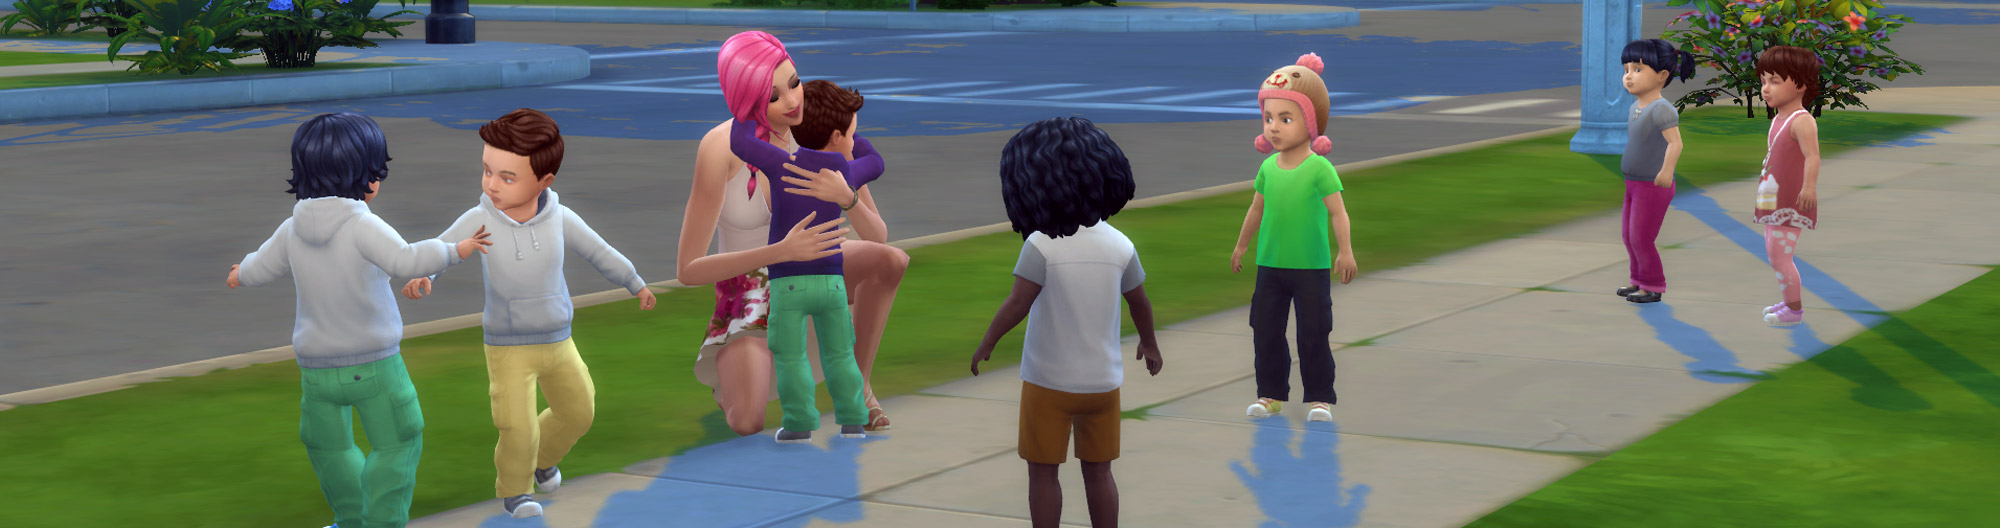 The Sims 4 Play Challenge: Grow Up 7 Toddlers - Sims Online